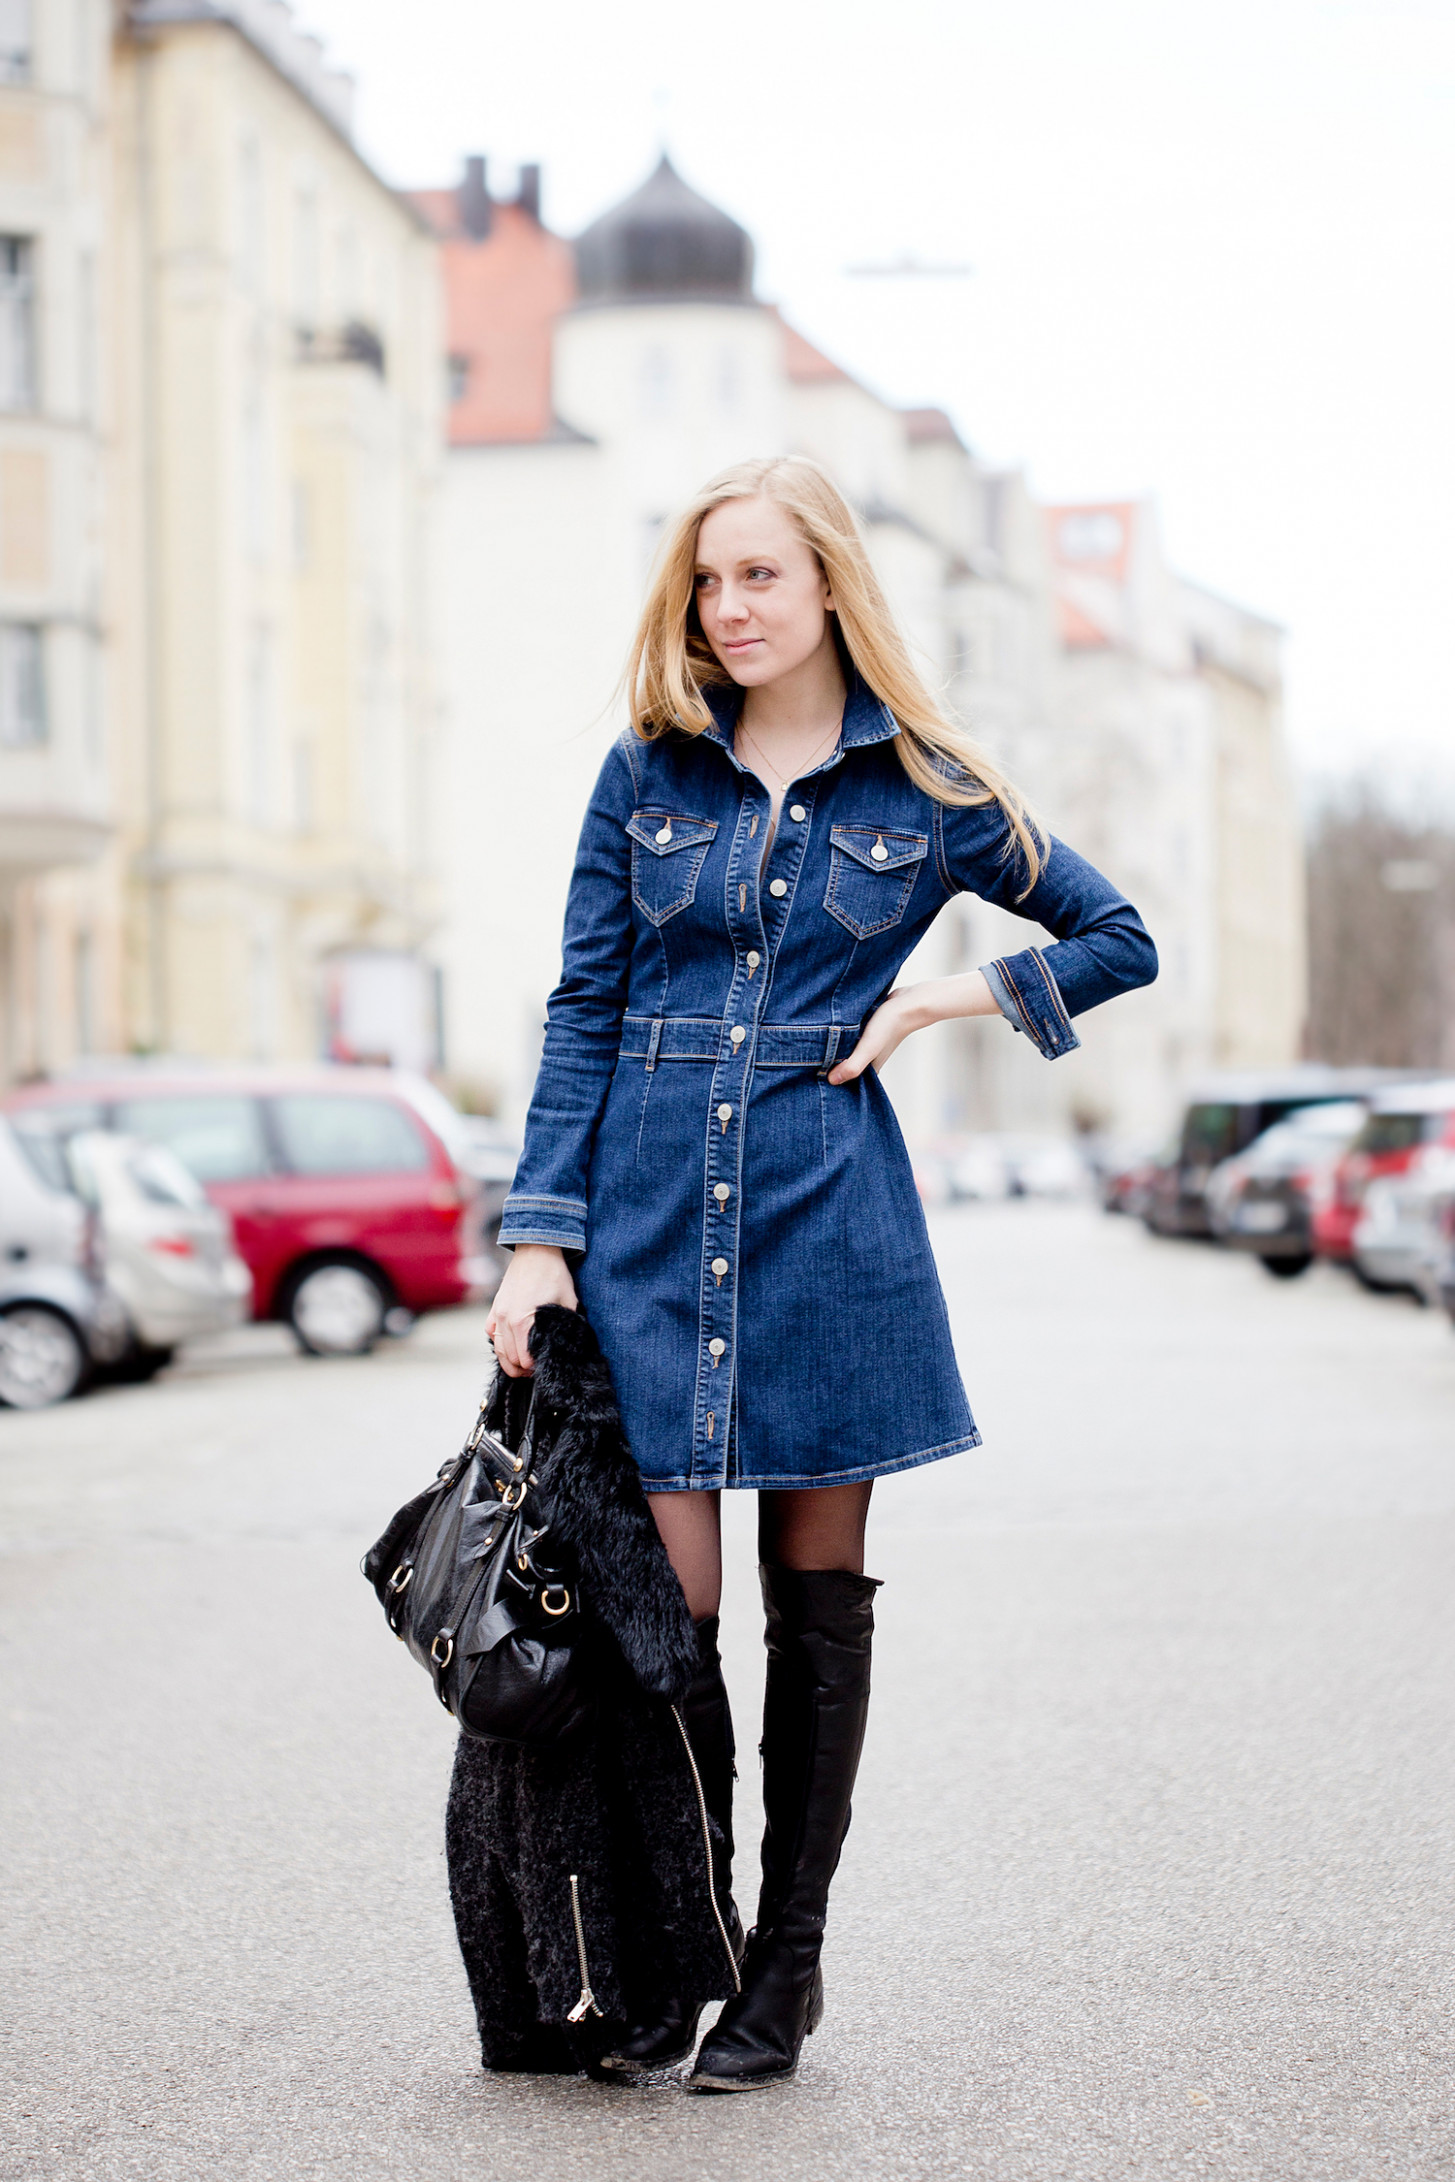 The denim dress and a styling problem - The Golden Bun